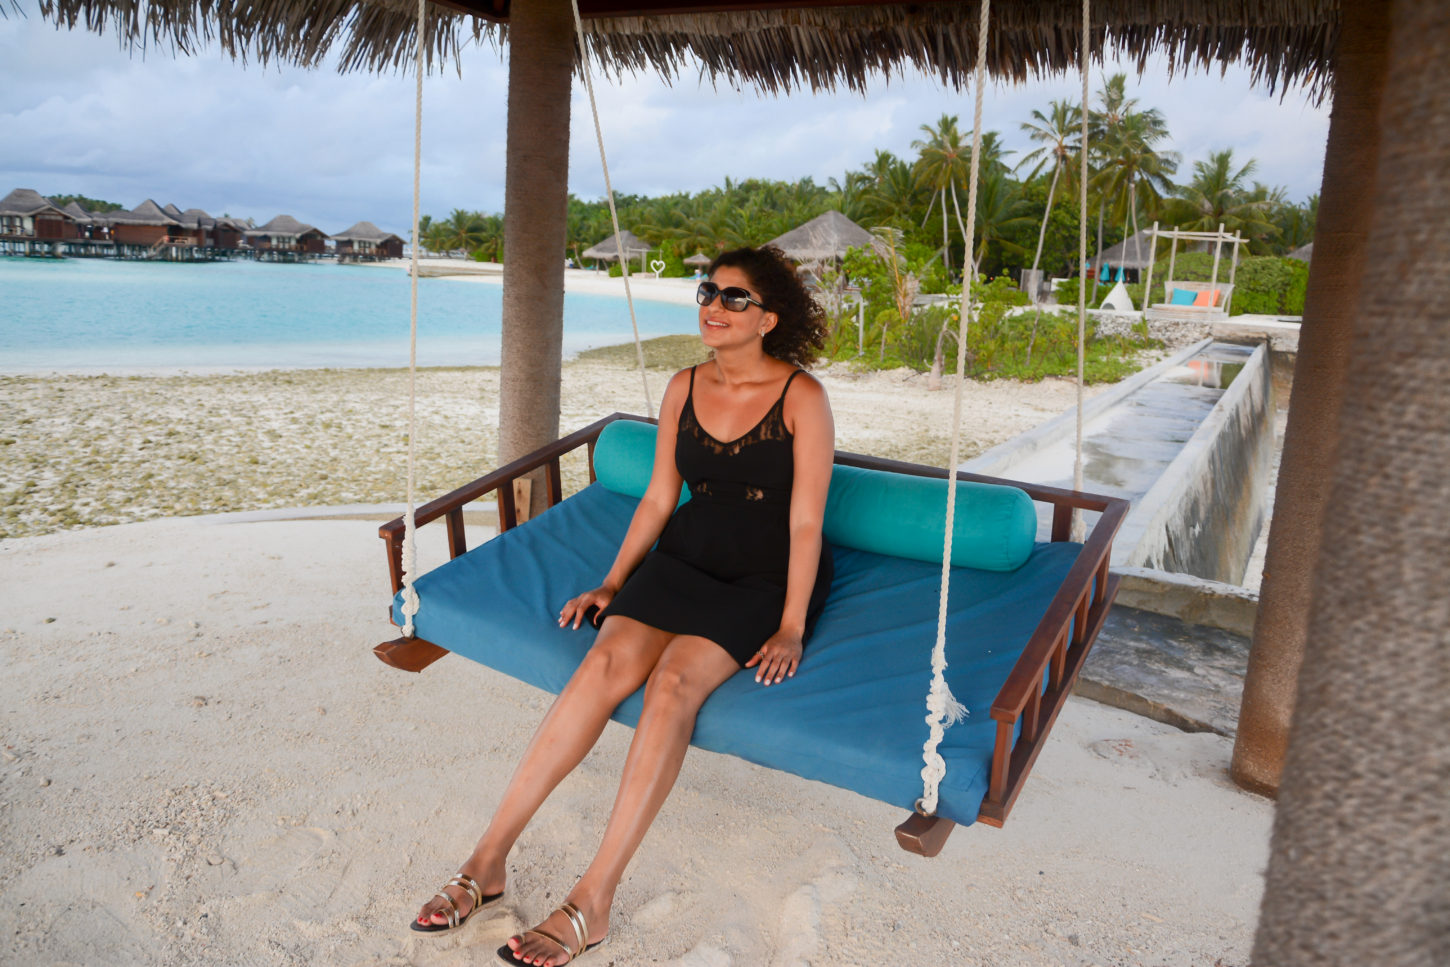 Unmatched tranquility in the Maldives